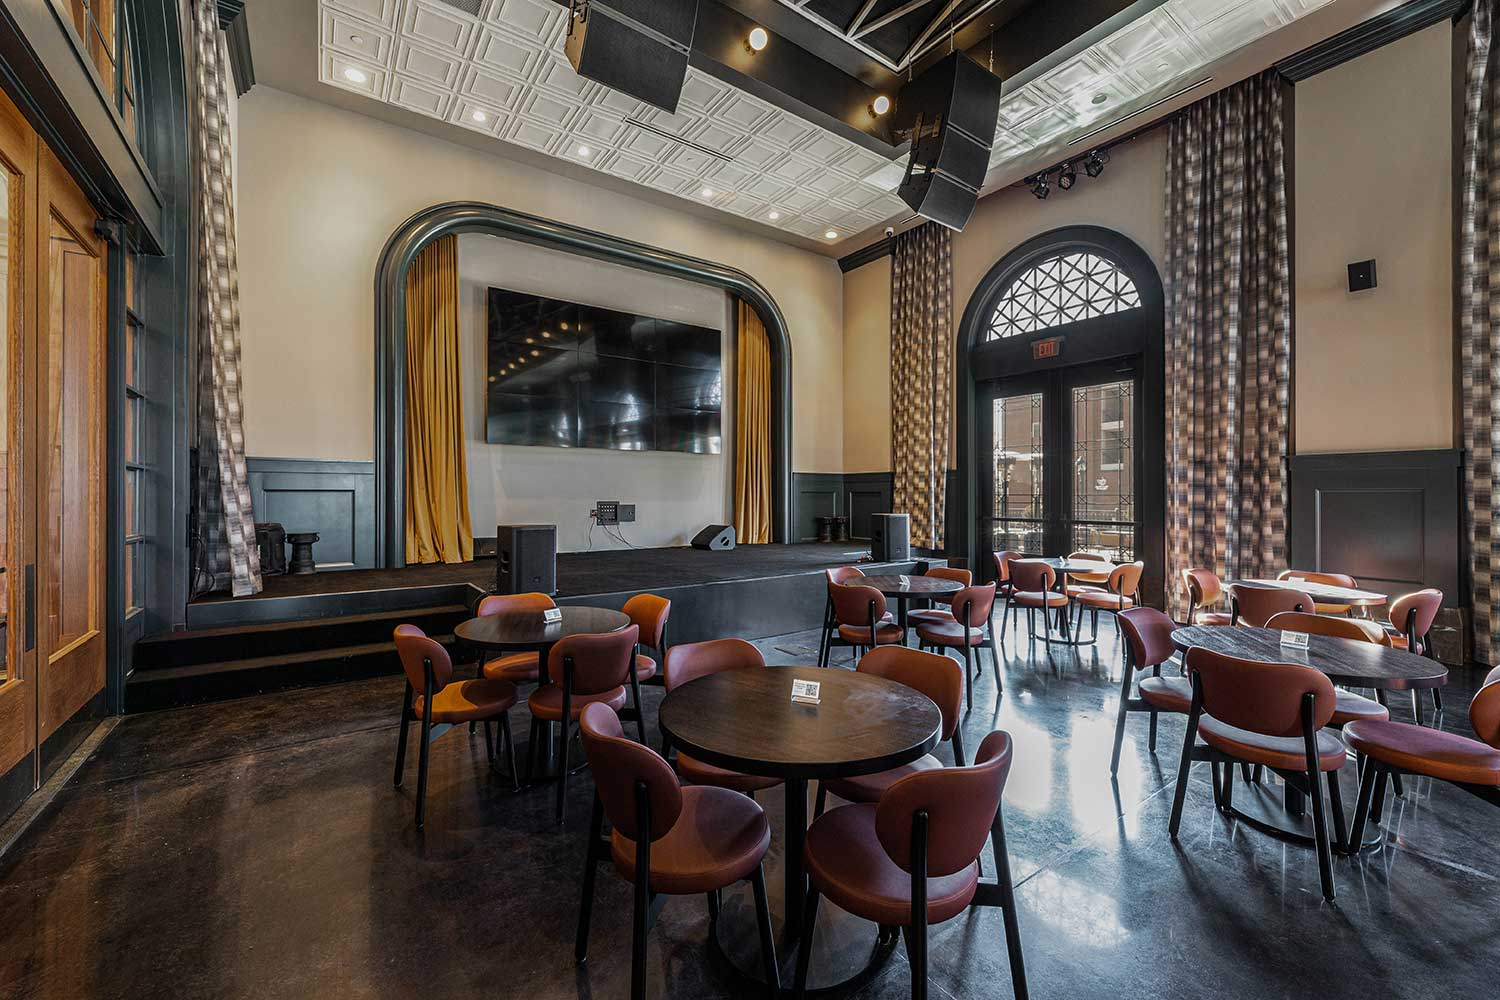 The Third Rail event space with dining tables and chairs and stage